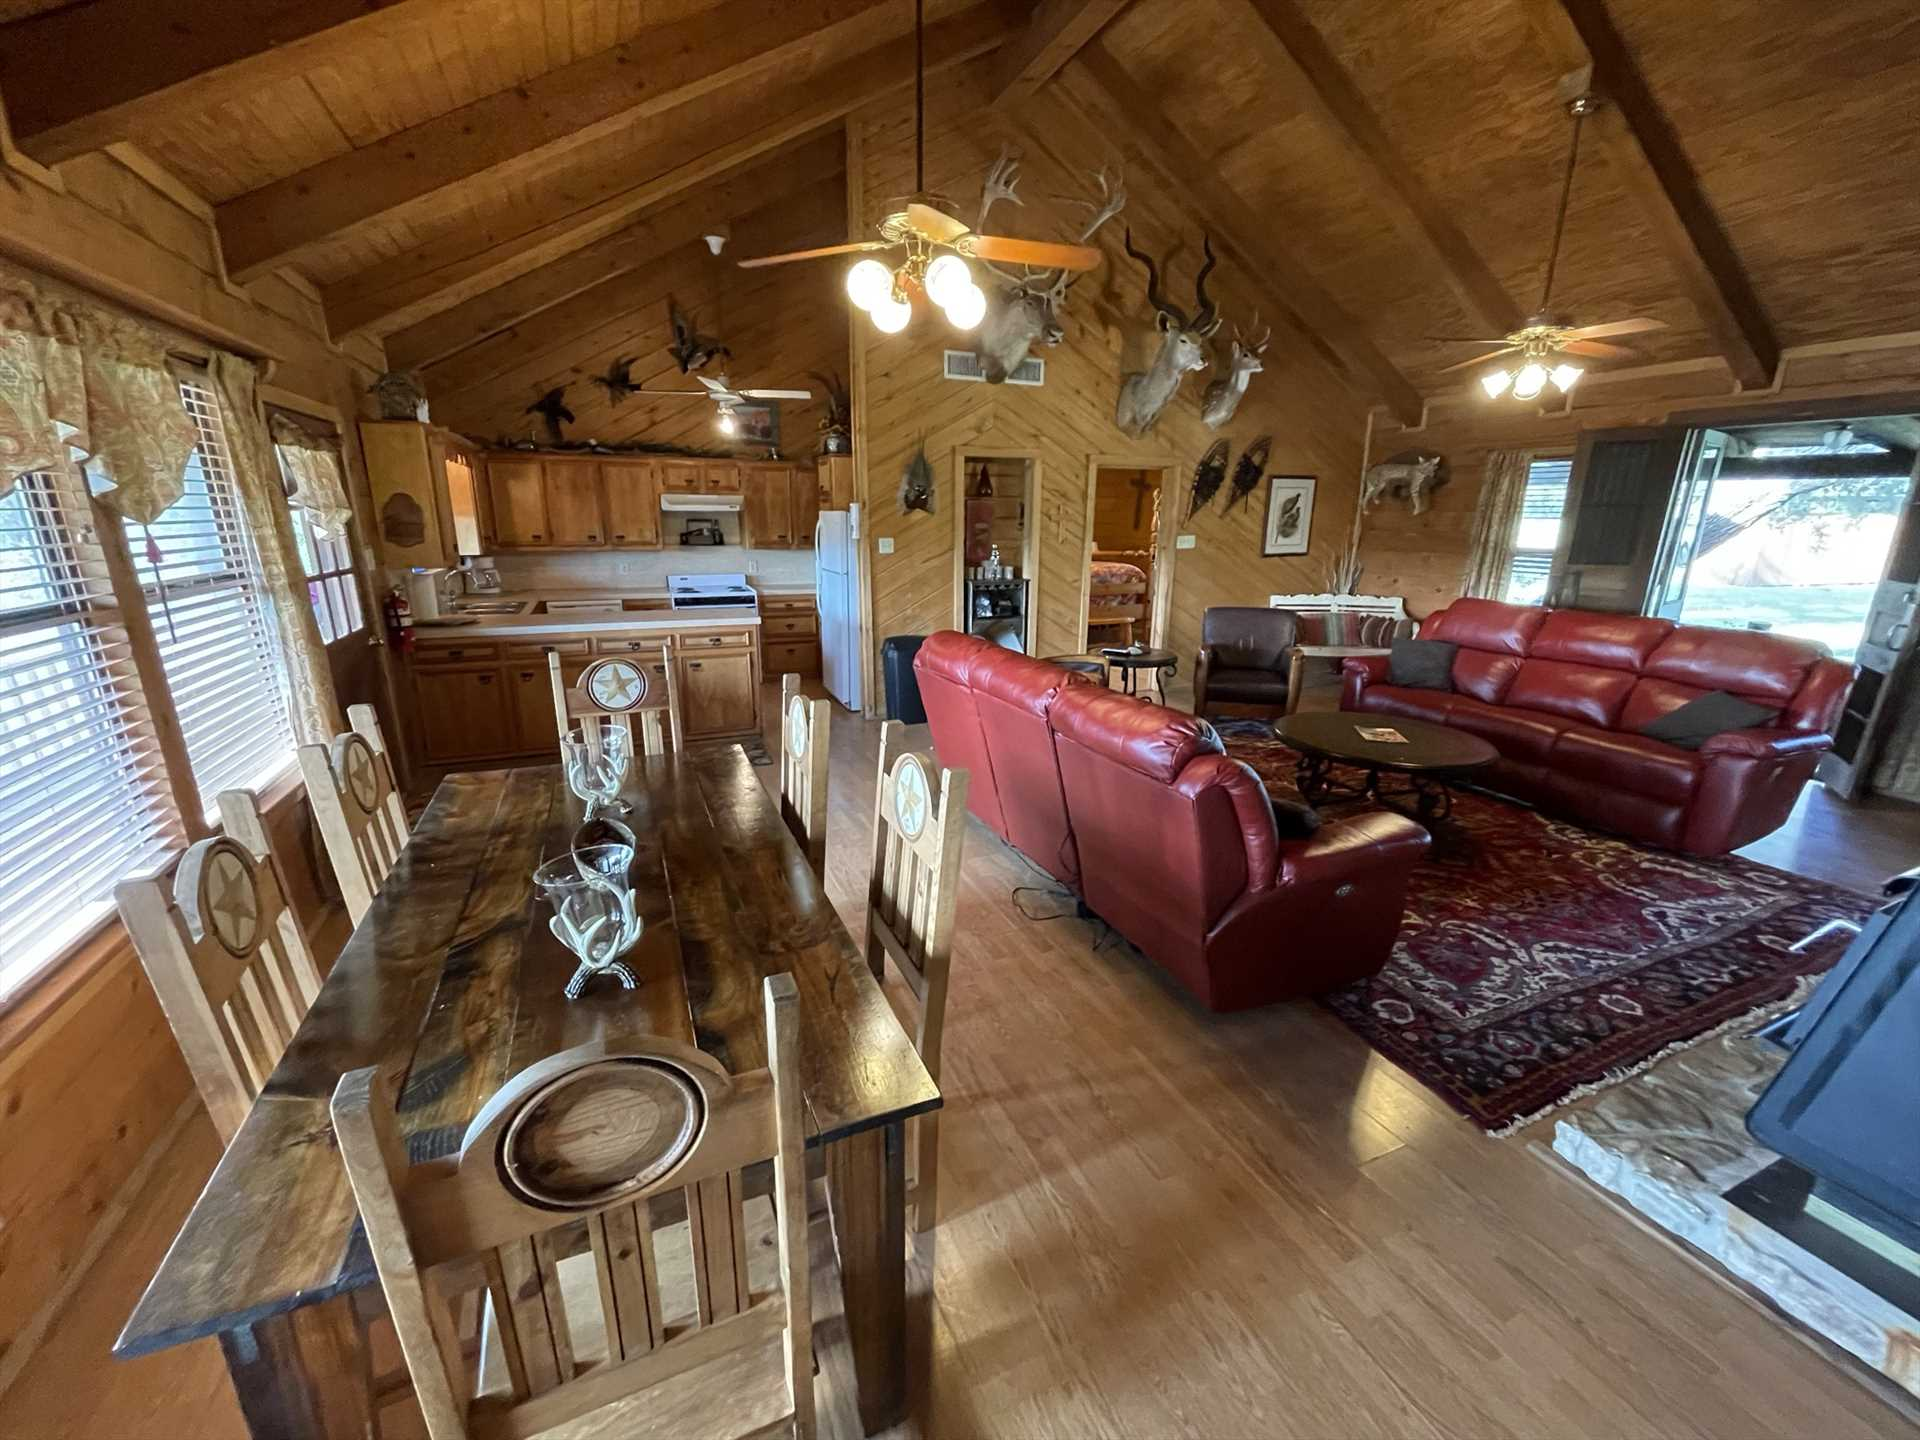 The dining room, fully-stocked kitchen, and living area all come together in the Lodge's open floor plan, so no one misses out on the fun and conversation no matter where they are!